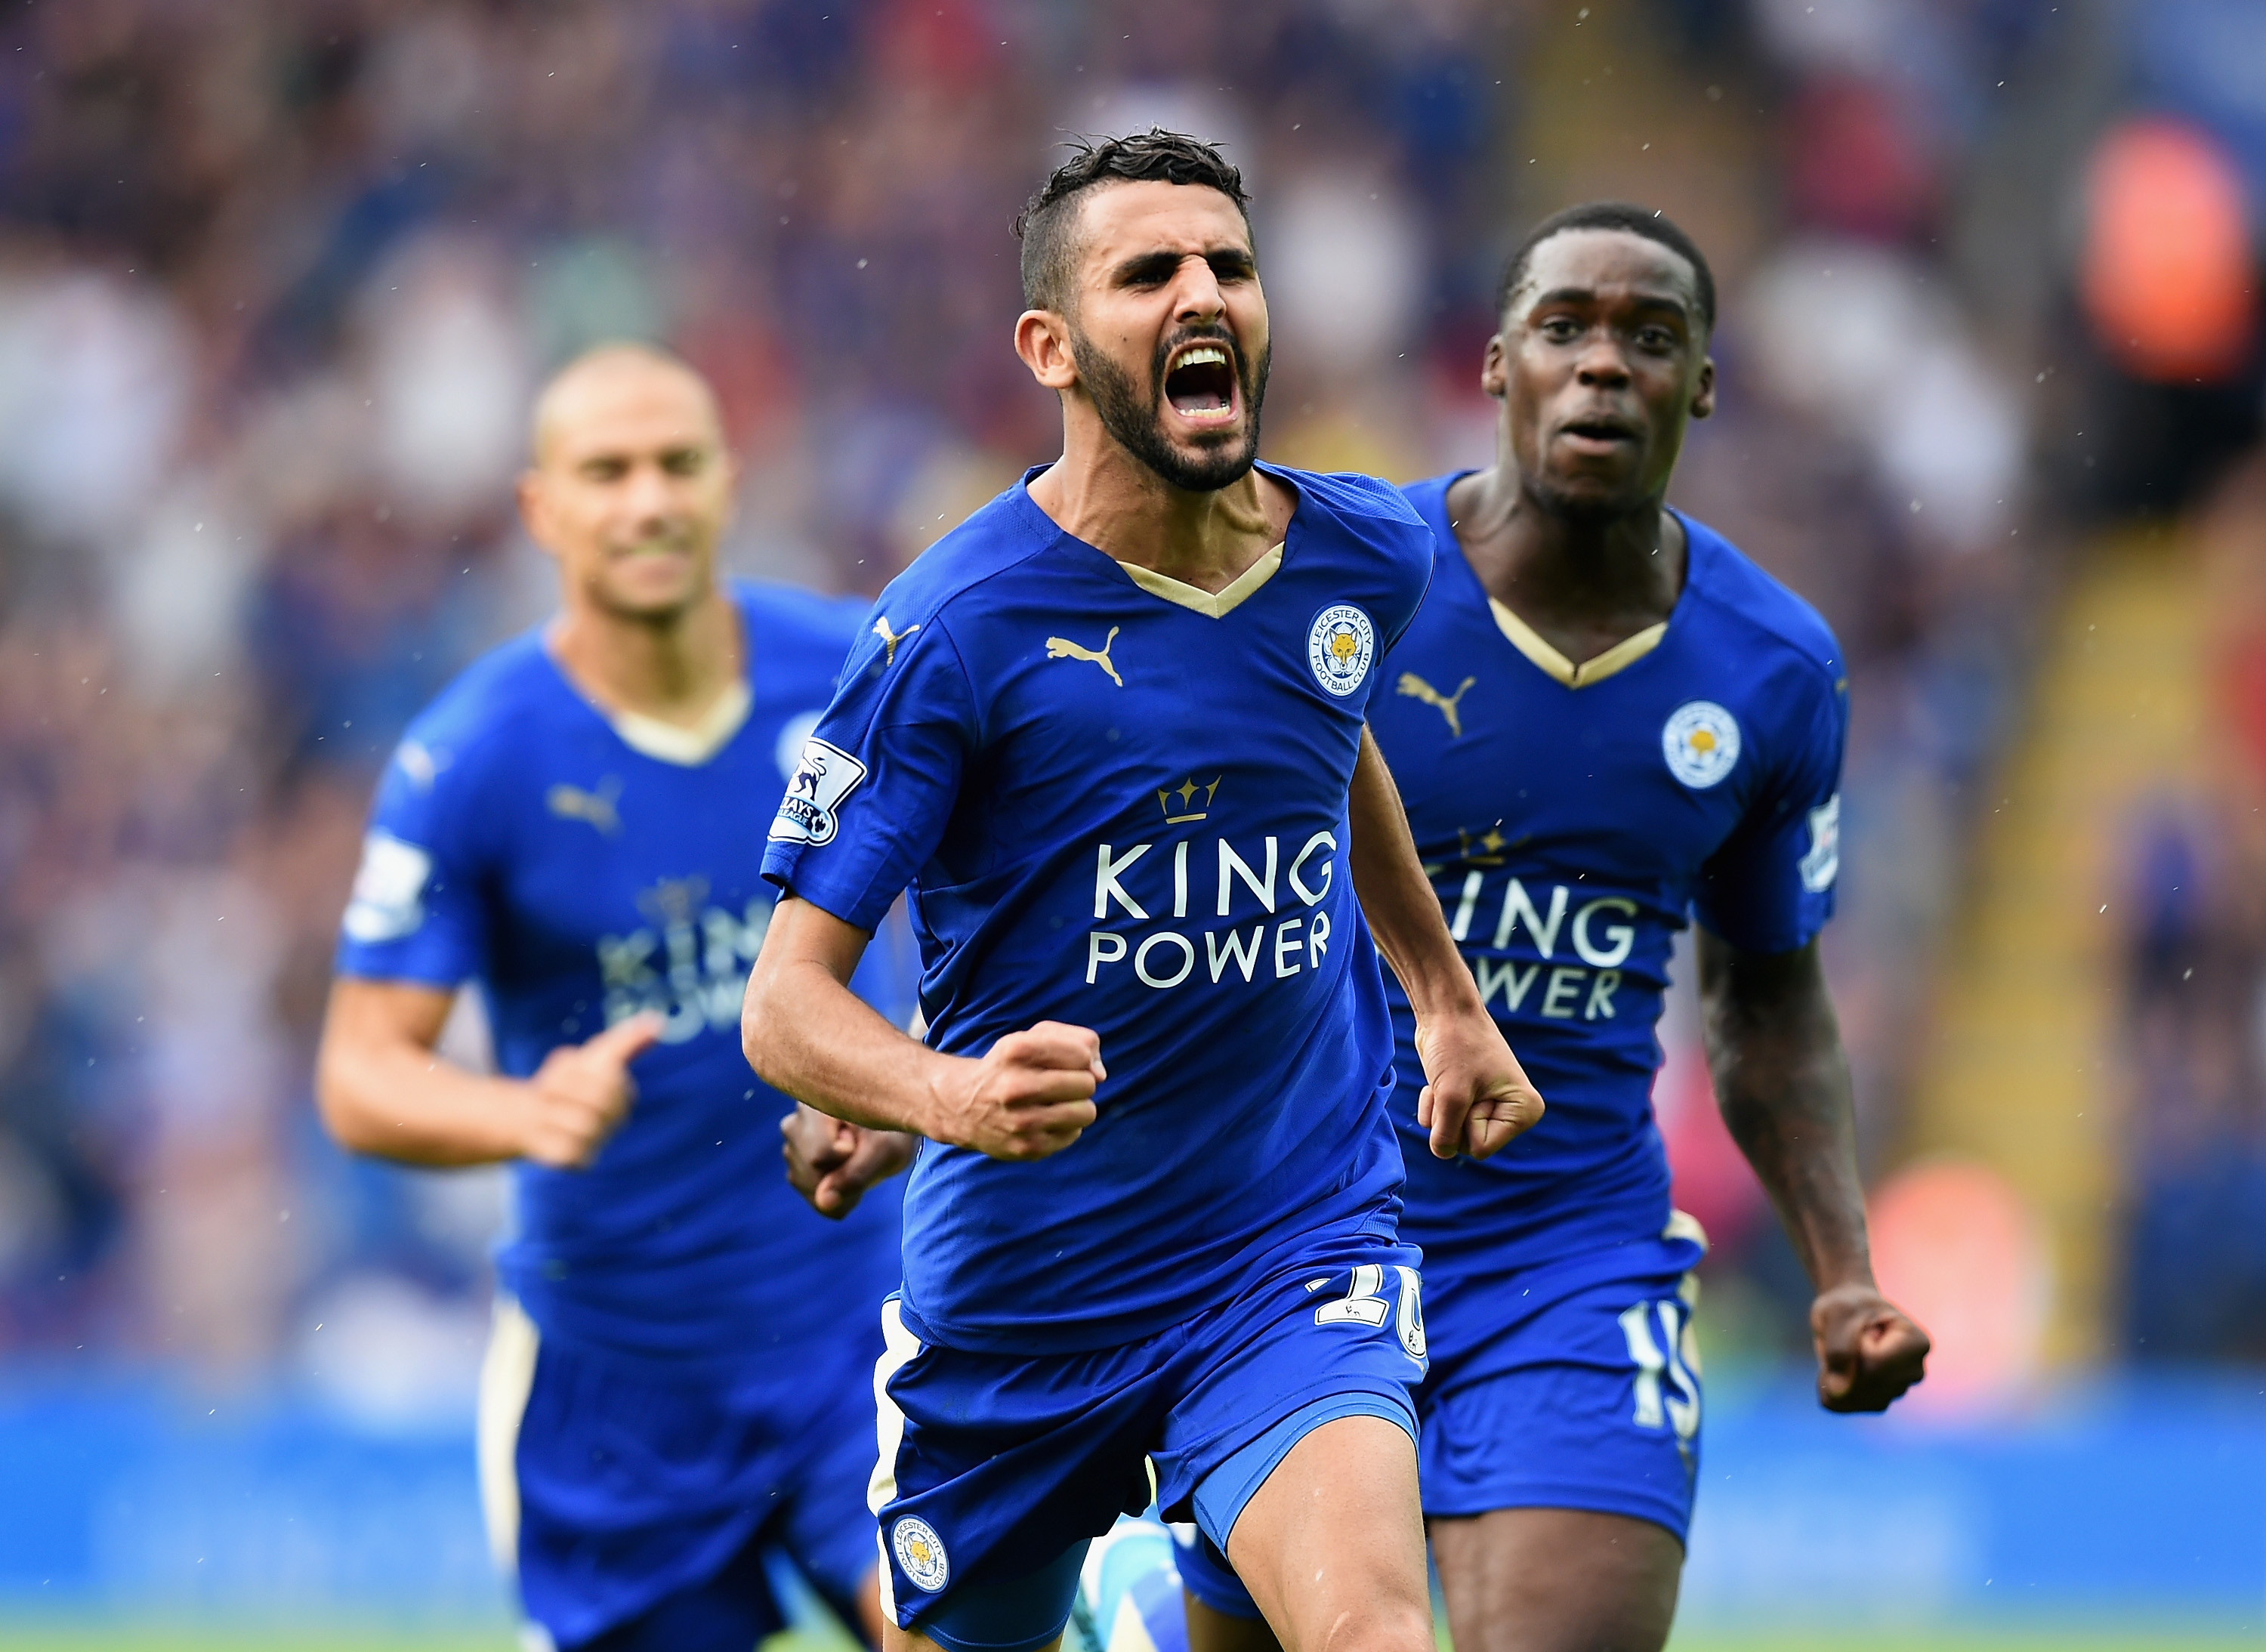 Why Barcelona could make a transfer move for Leicester City's Riyad Mahrez